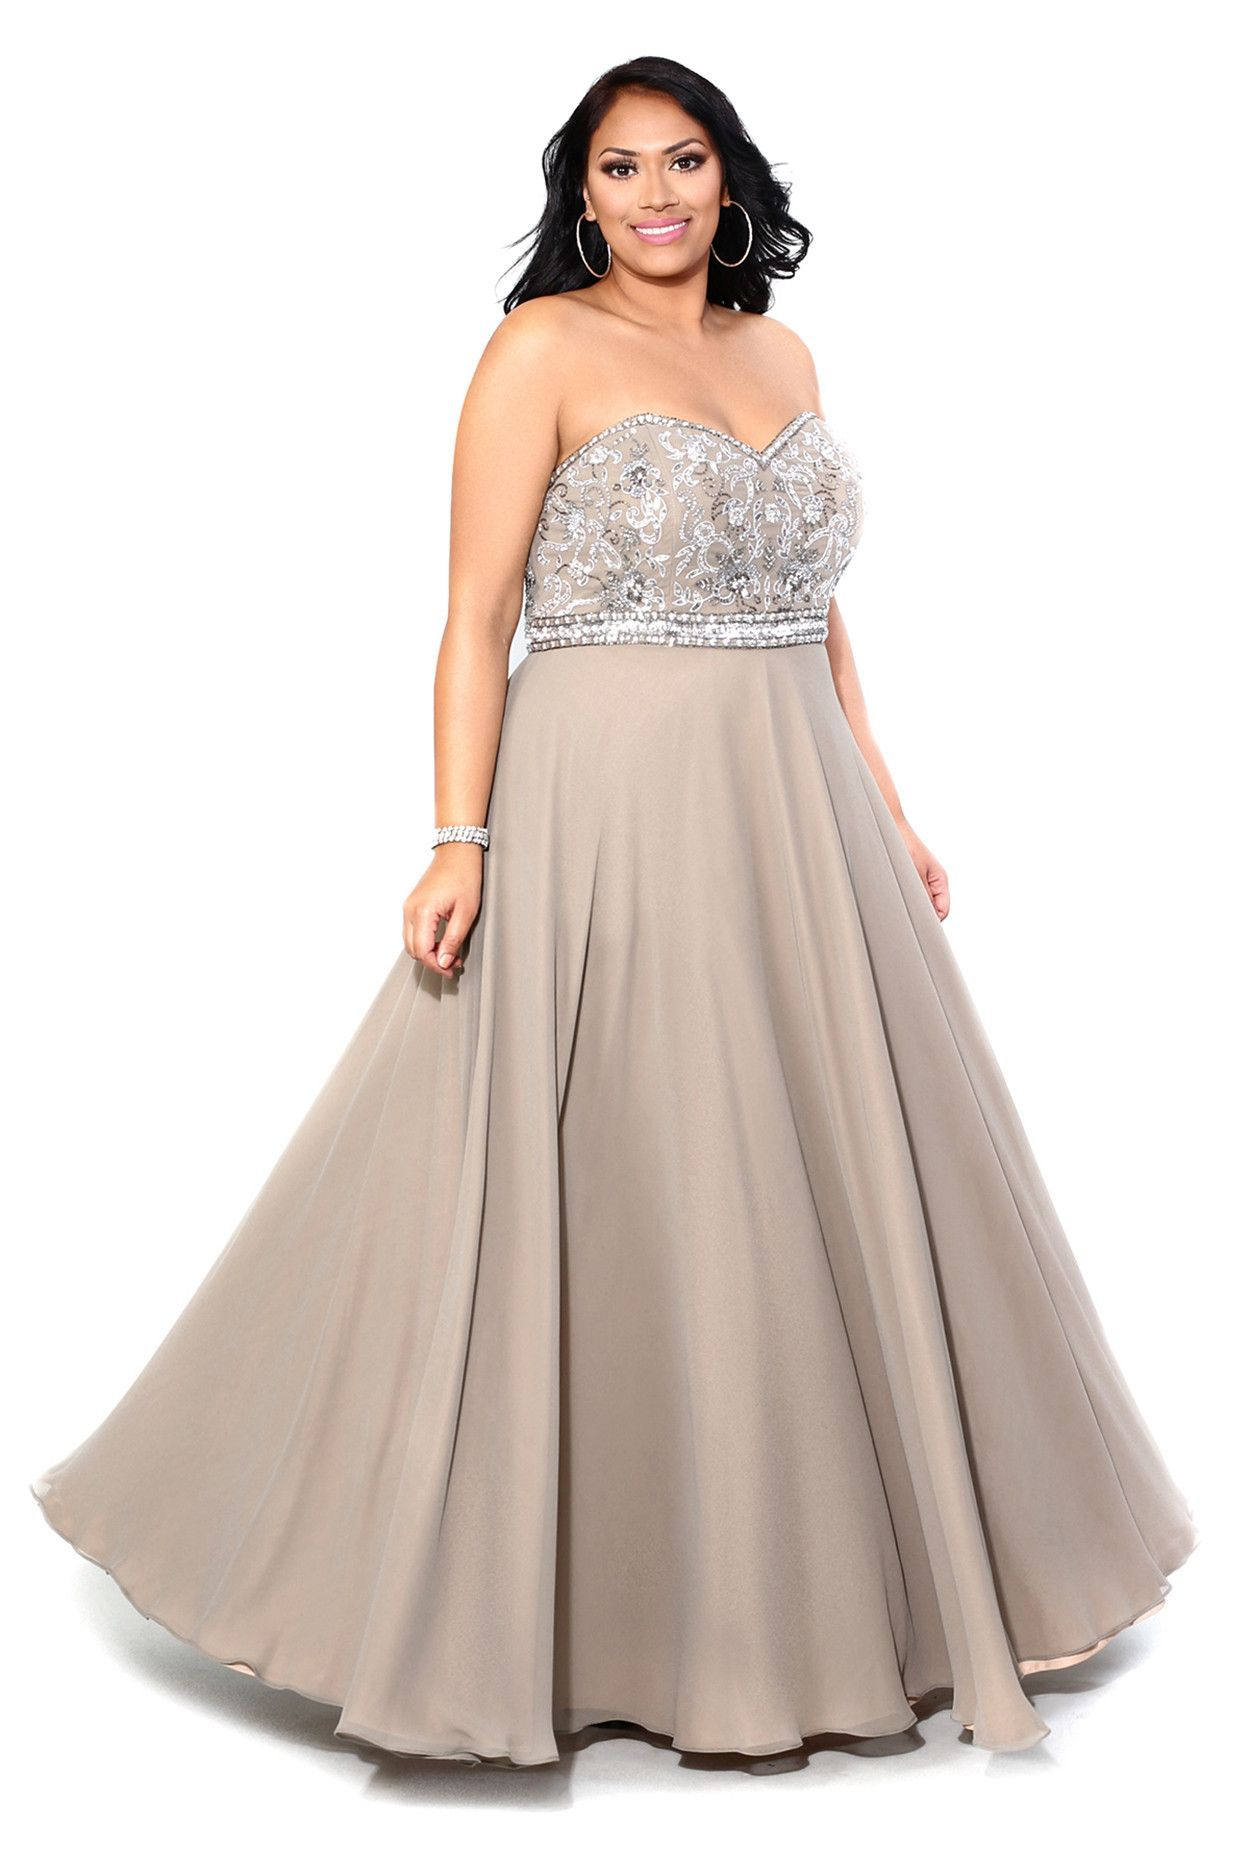 Embellished strapless gown free shipping and products